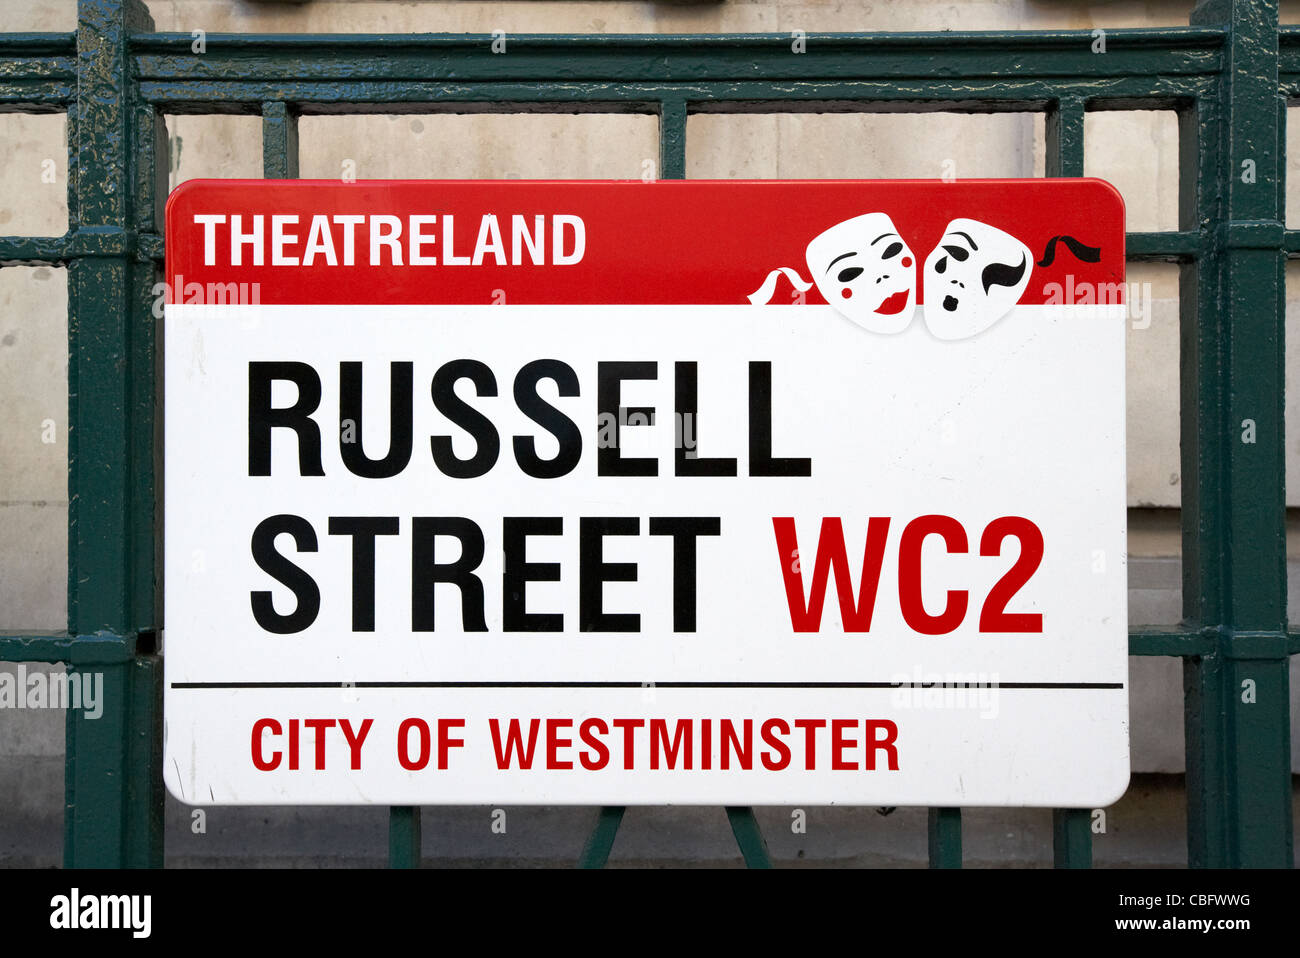 streetsign for russell street in theatreland west end london england uk united kingdom - Stock Image